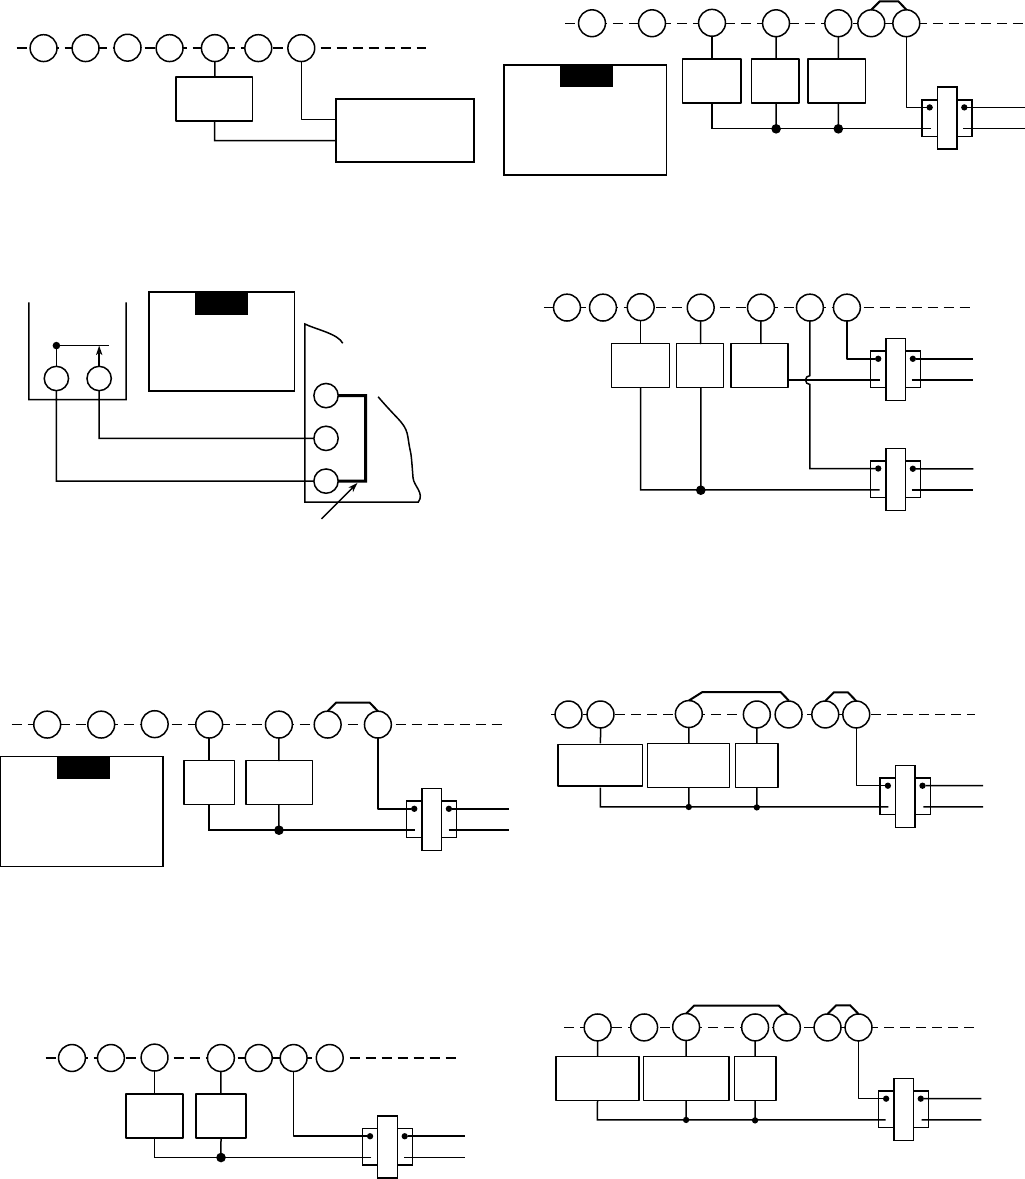 white rodgers wiring diagrams white get free image about wiring diagram